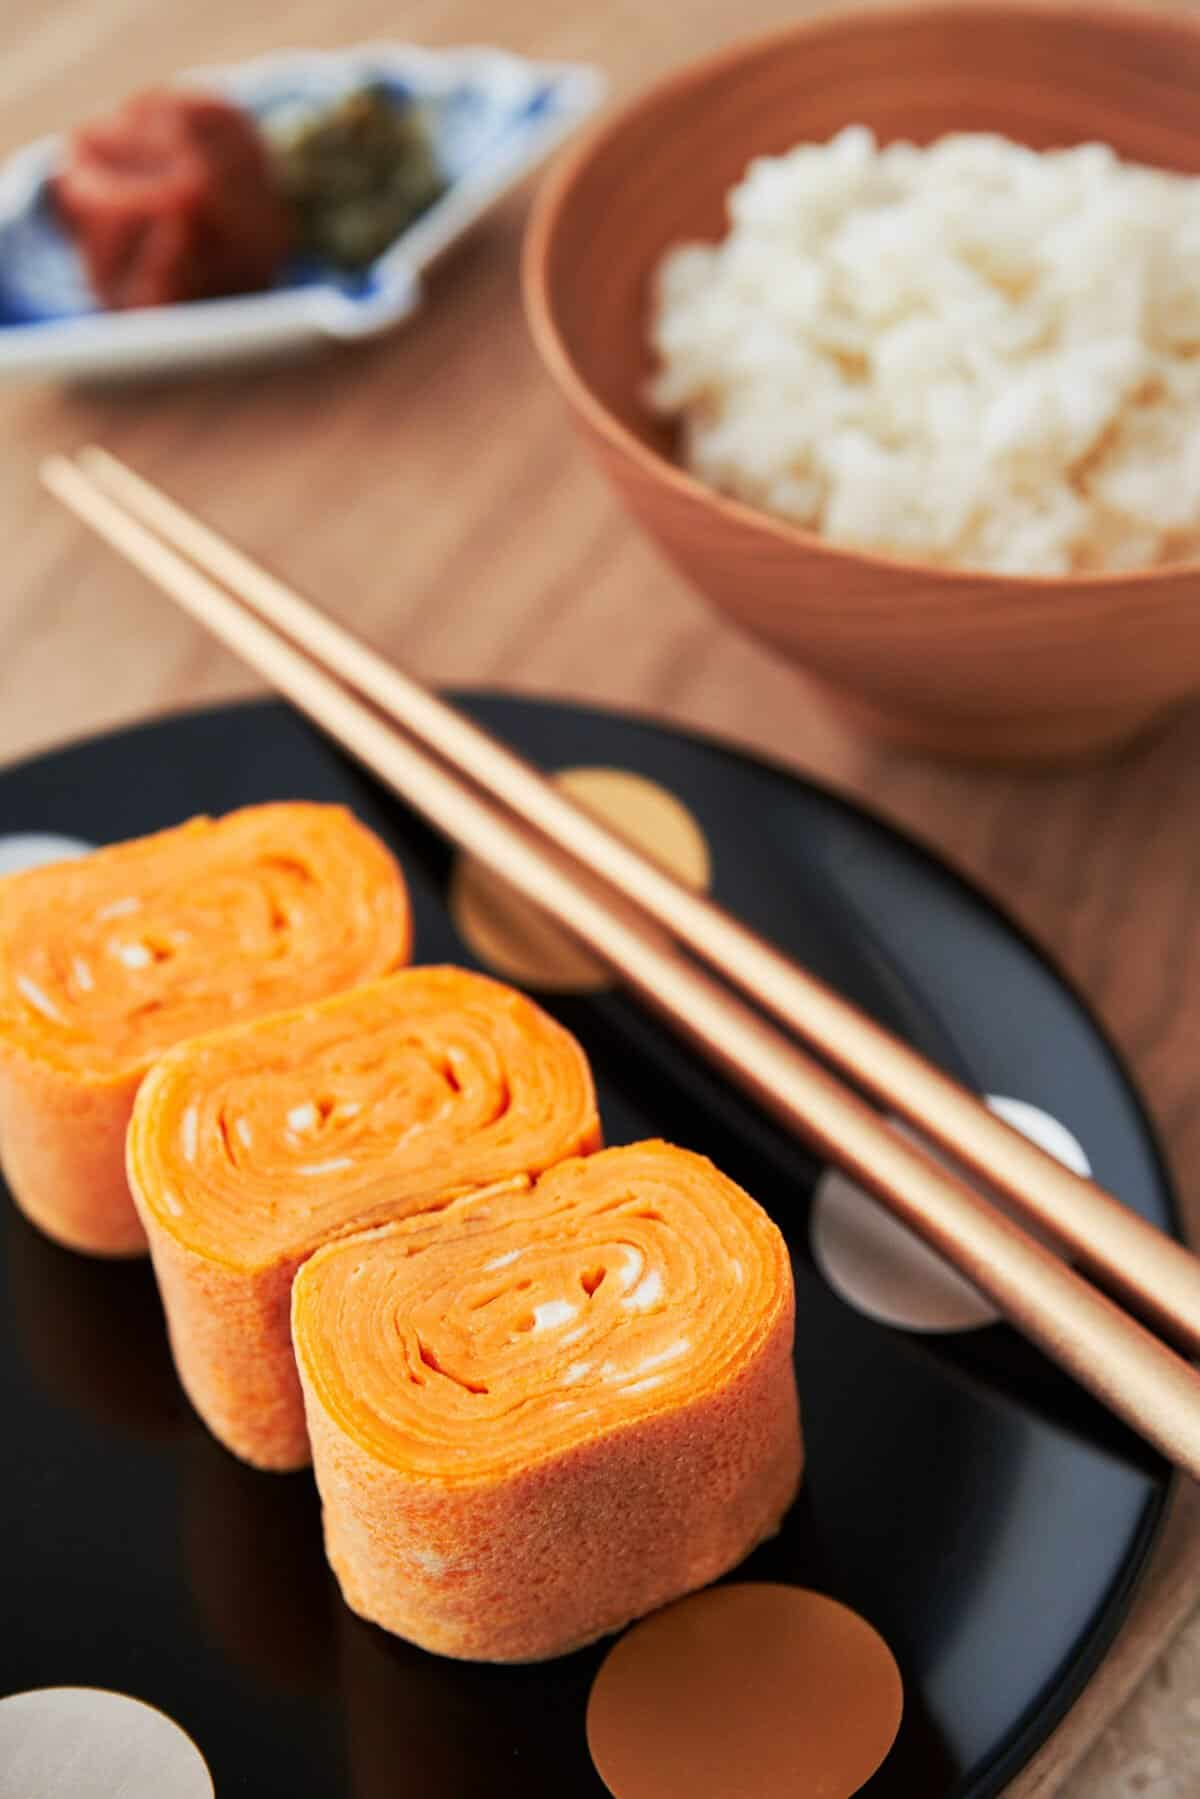 With thin layers of egg rolled into an omelette, Tamagoyaki is a delicious Japanese breakfast dish that also works great into a bento box lunch.